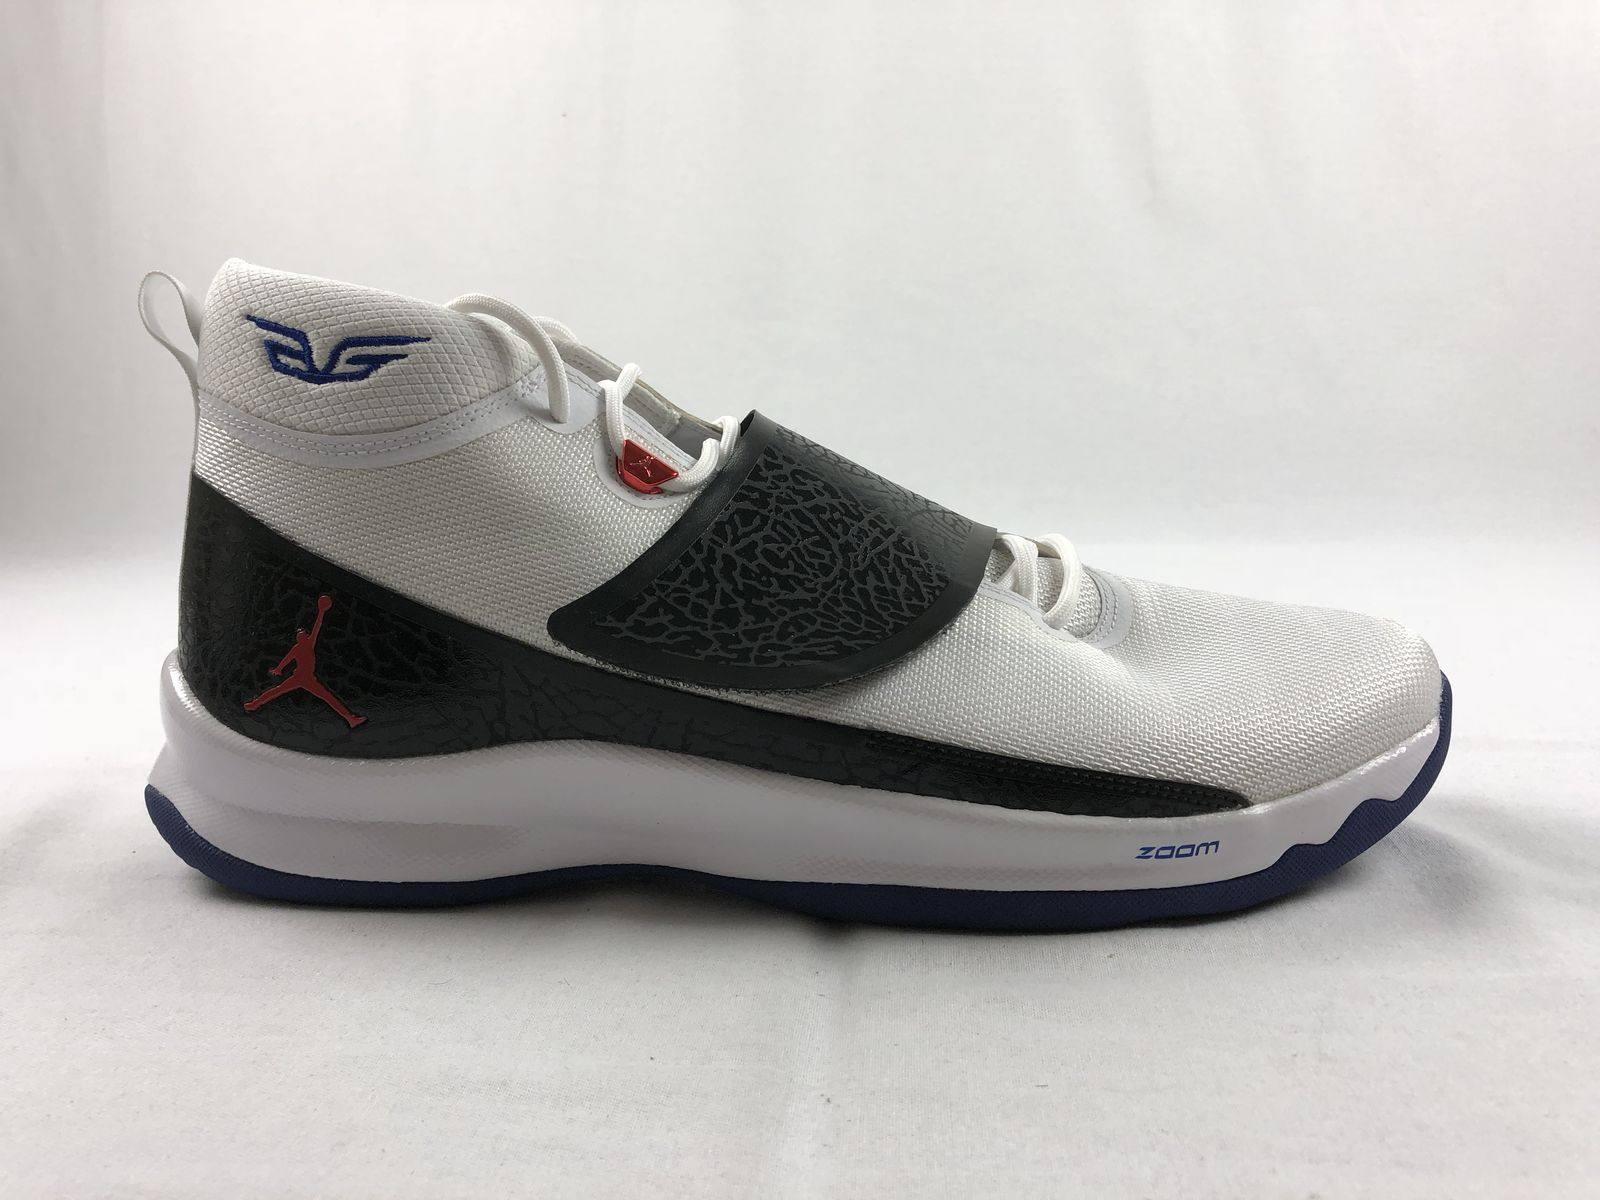 33de5b332509 NEW Jordan Super Fly 5 Promo - White Black Basketball Shoes (Men s ...